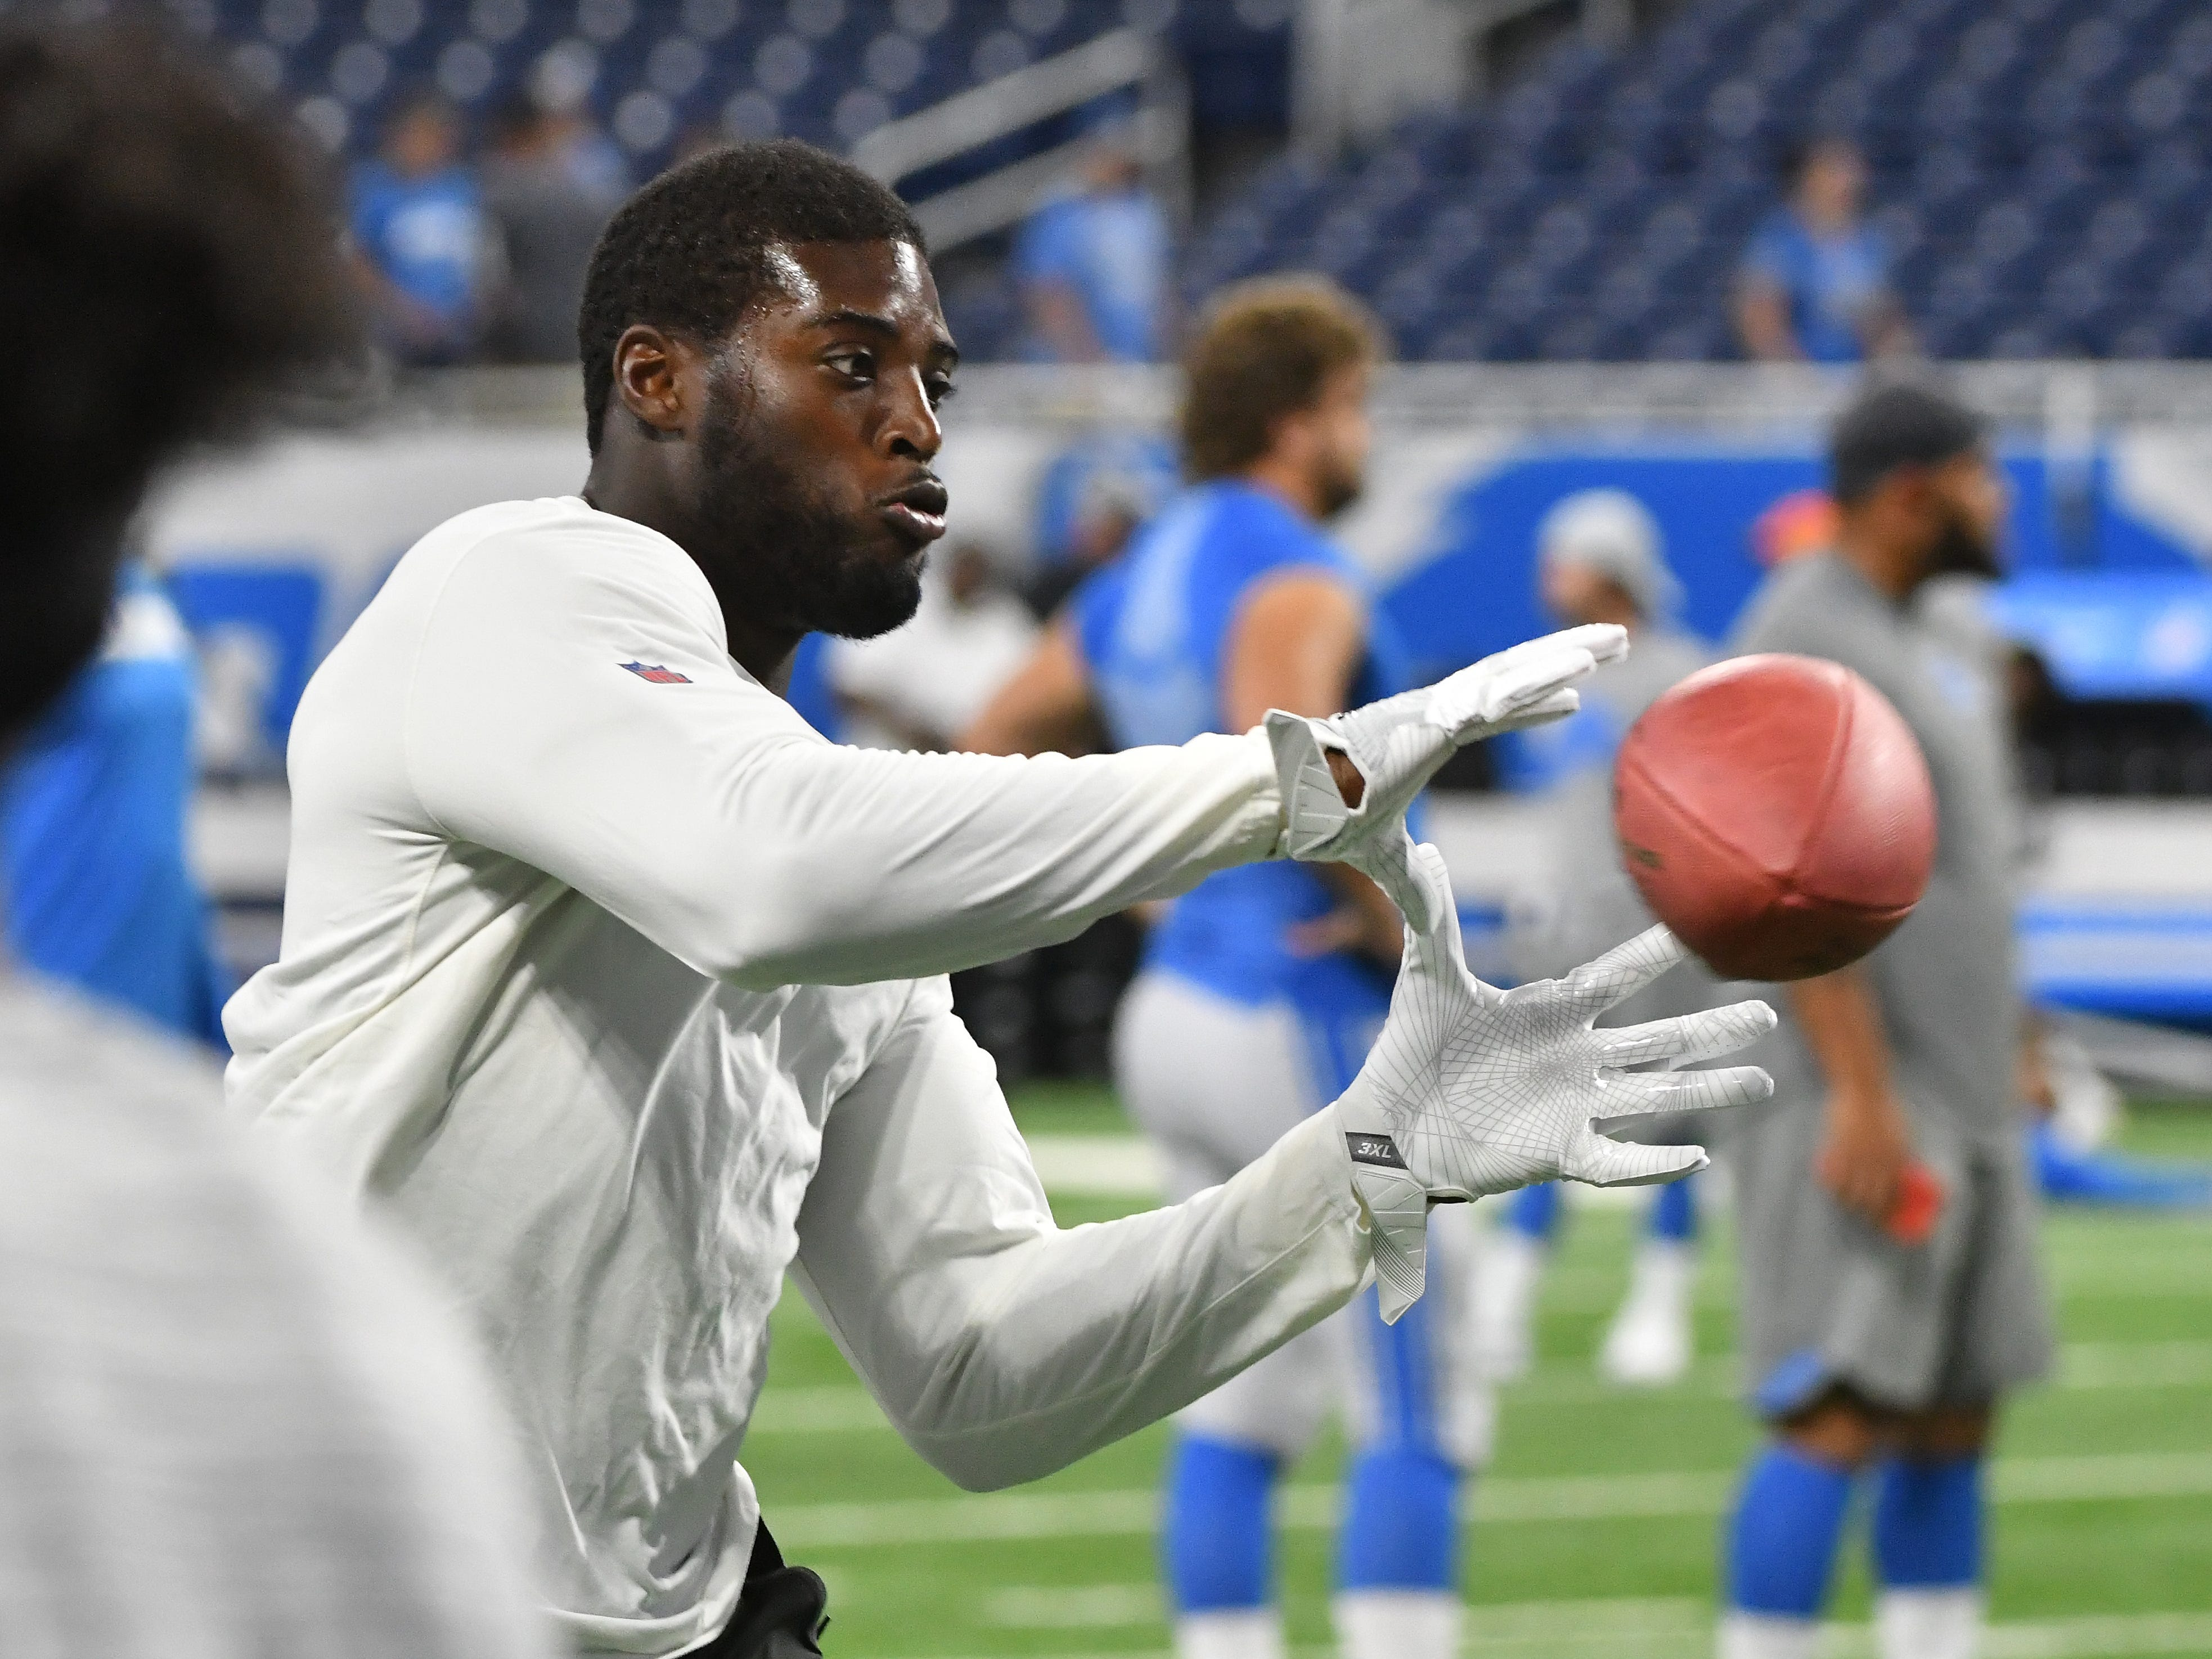 Lions' Jarrad Davis readies his hands for a reception during warmups as Detroit takes on the New York Giants at Ford Field in Detroit, Michigan on August 17, 2018. .